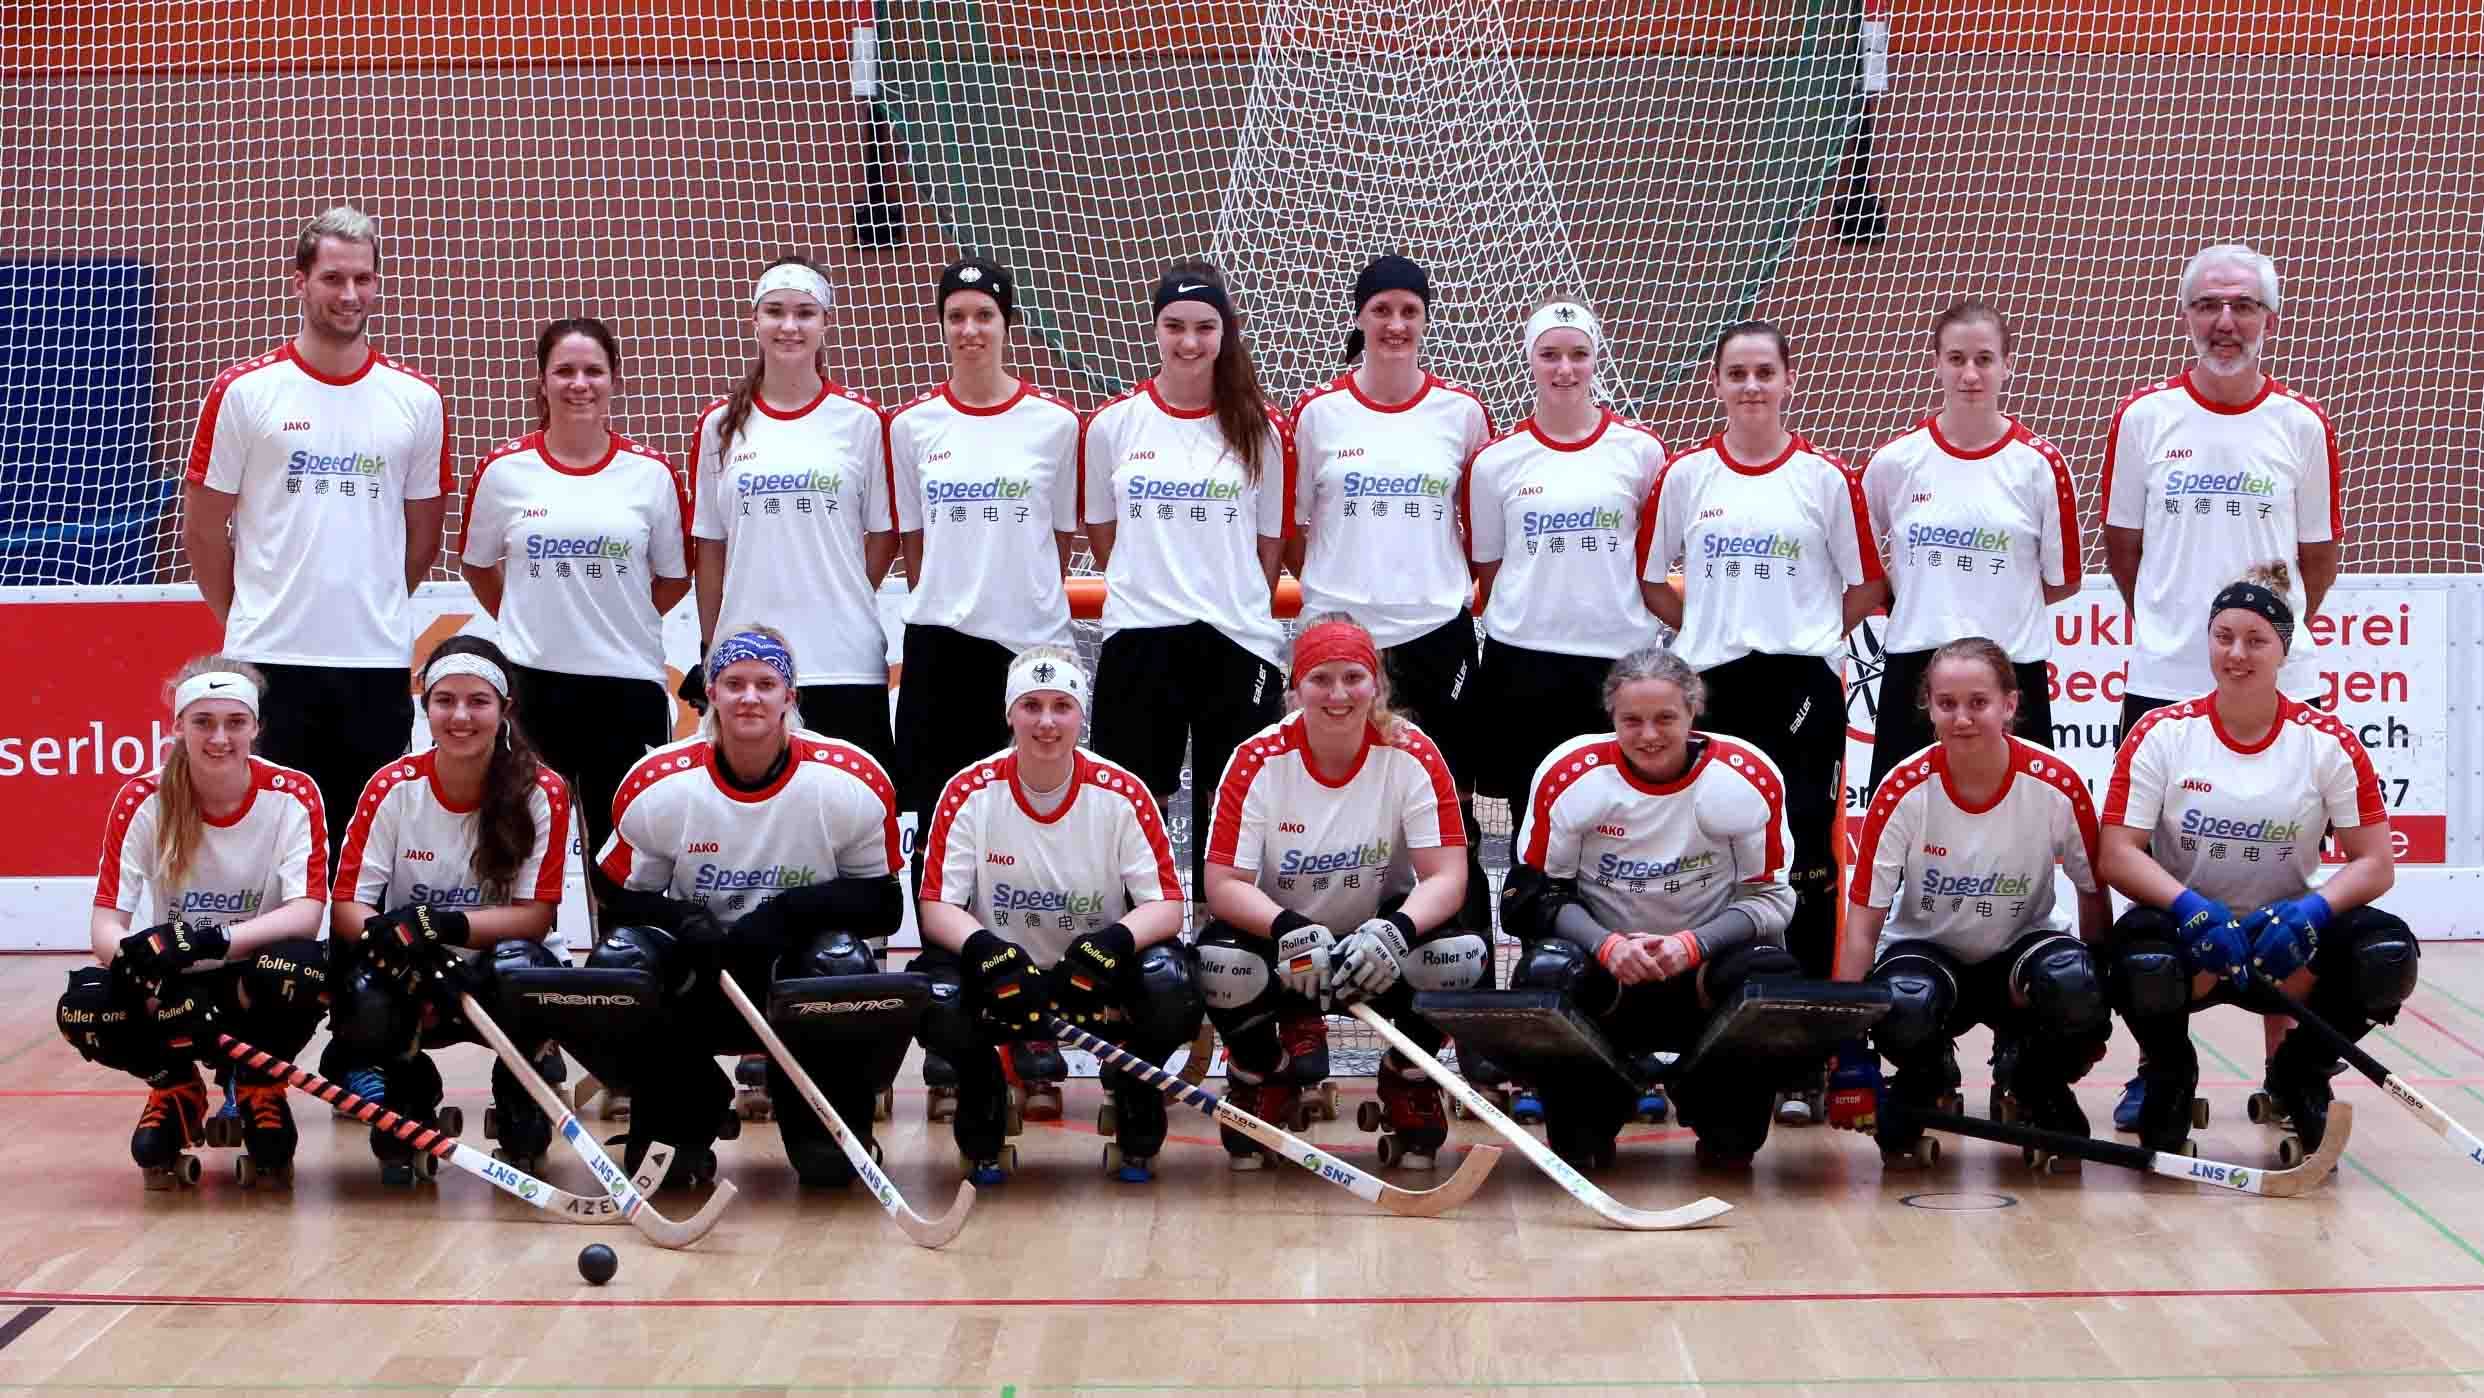 Our Sponsorship Contract To The German Women's National Roller Hockey Team Extended